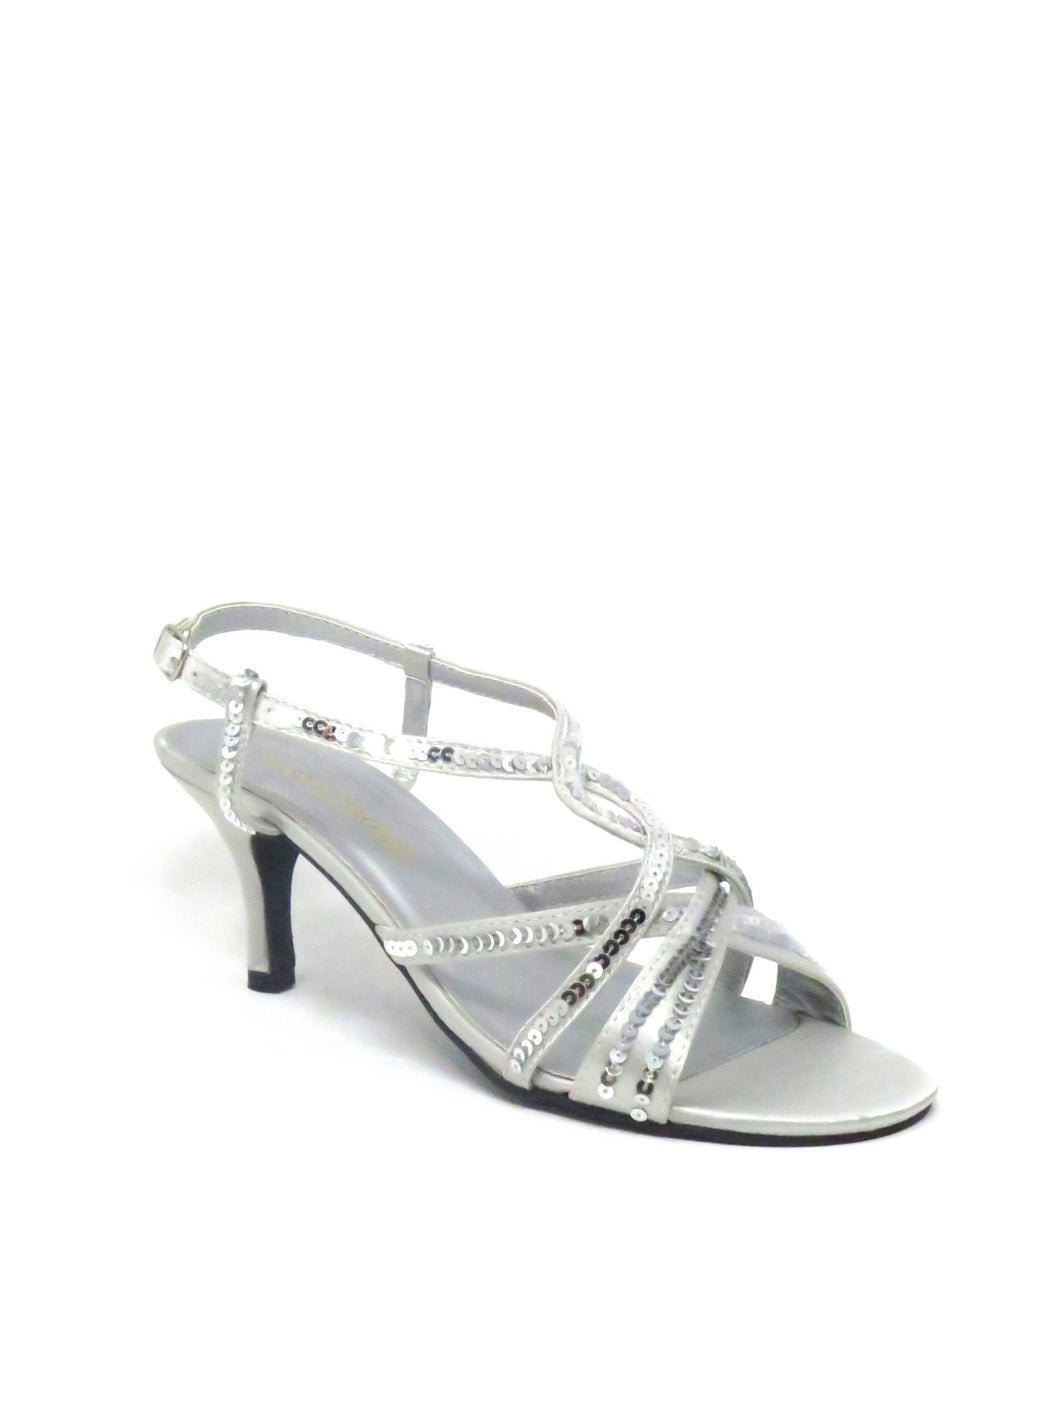 Annie | 121-62 | Yvonne Dress Sandal | Silver